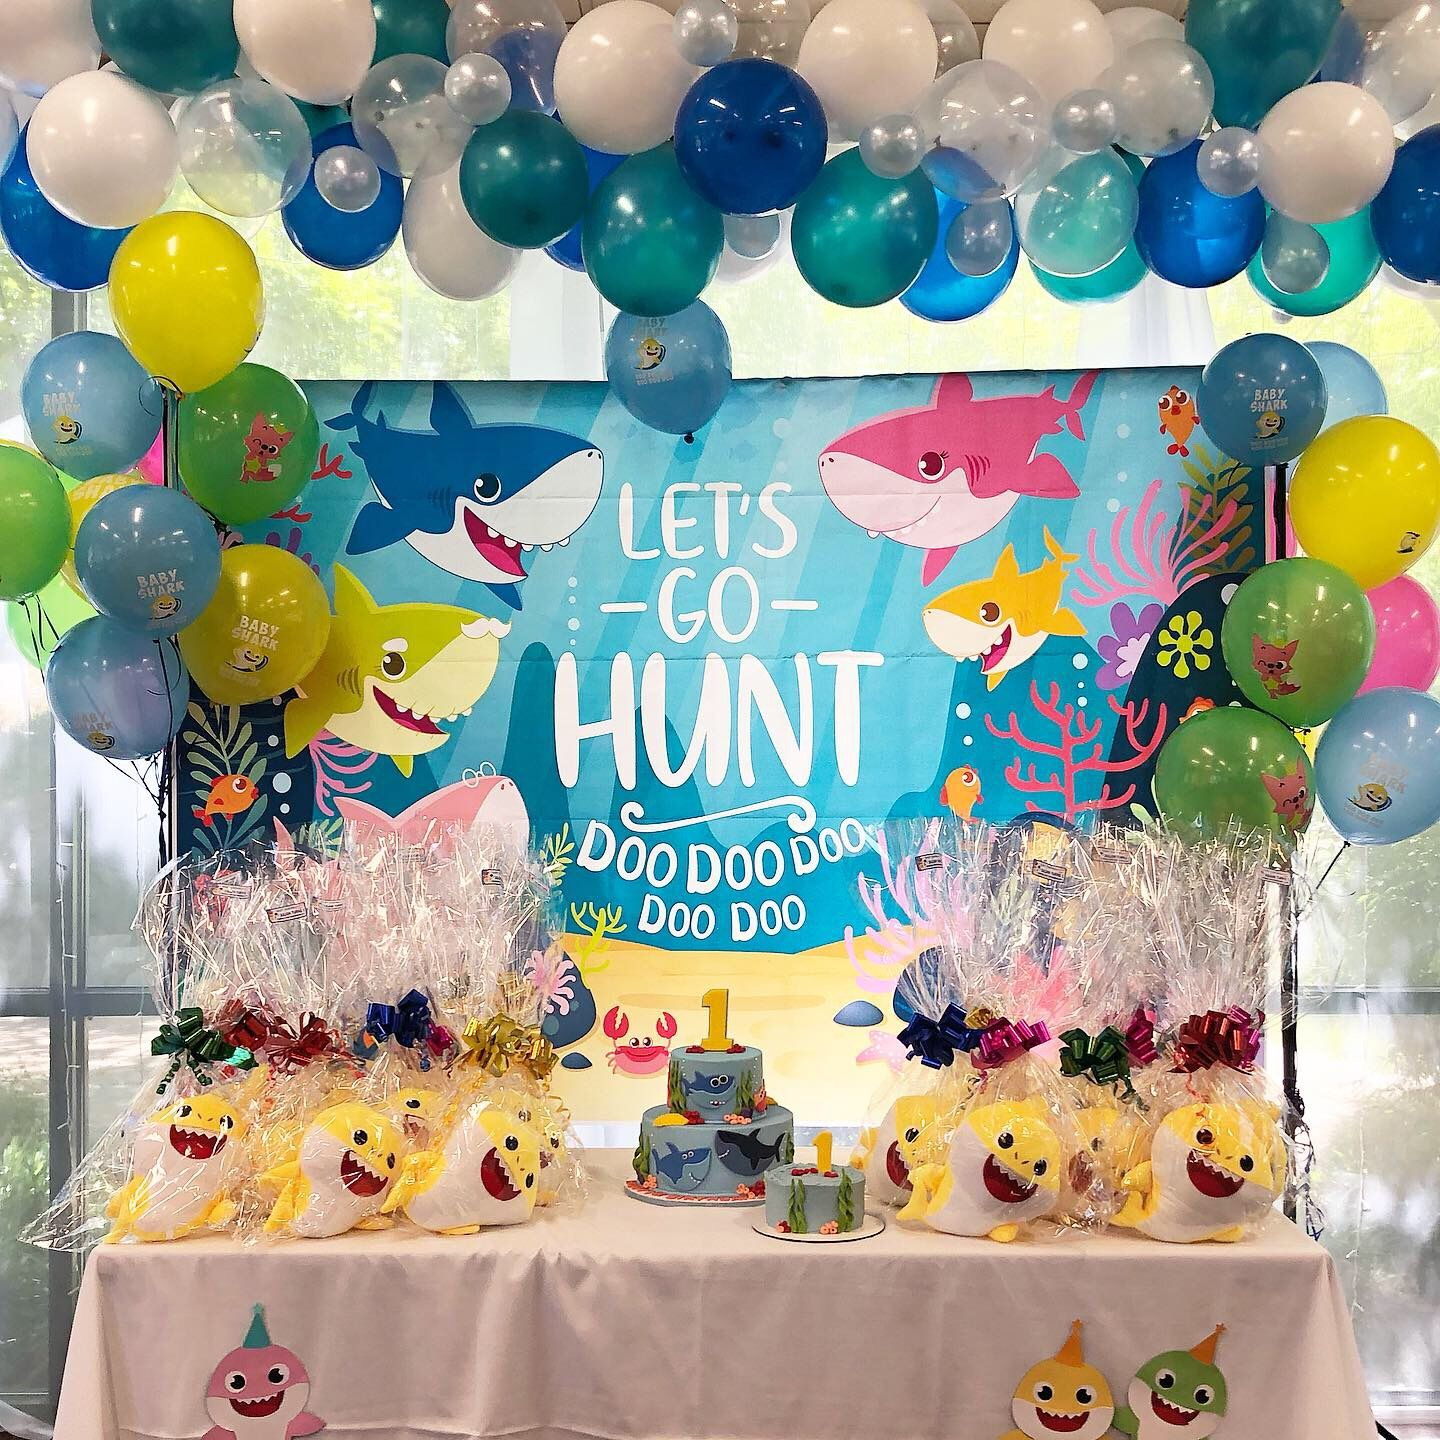 Get Ideas For Your Baby Shark Themed Party Here Bubble Balloons Balloon Garland Baby Sha Shark Birthday Party Shark Themed Birthday Party Shark Themed Party